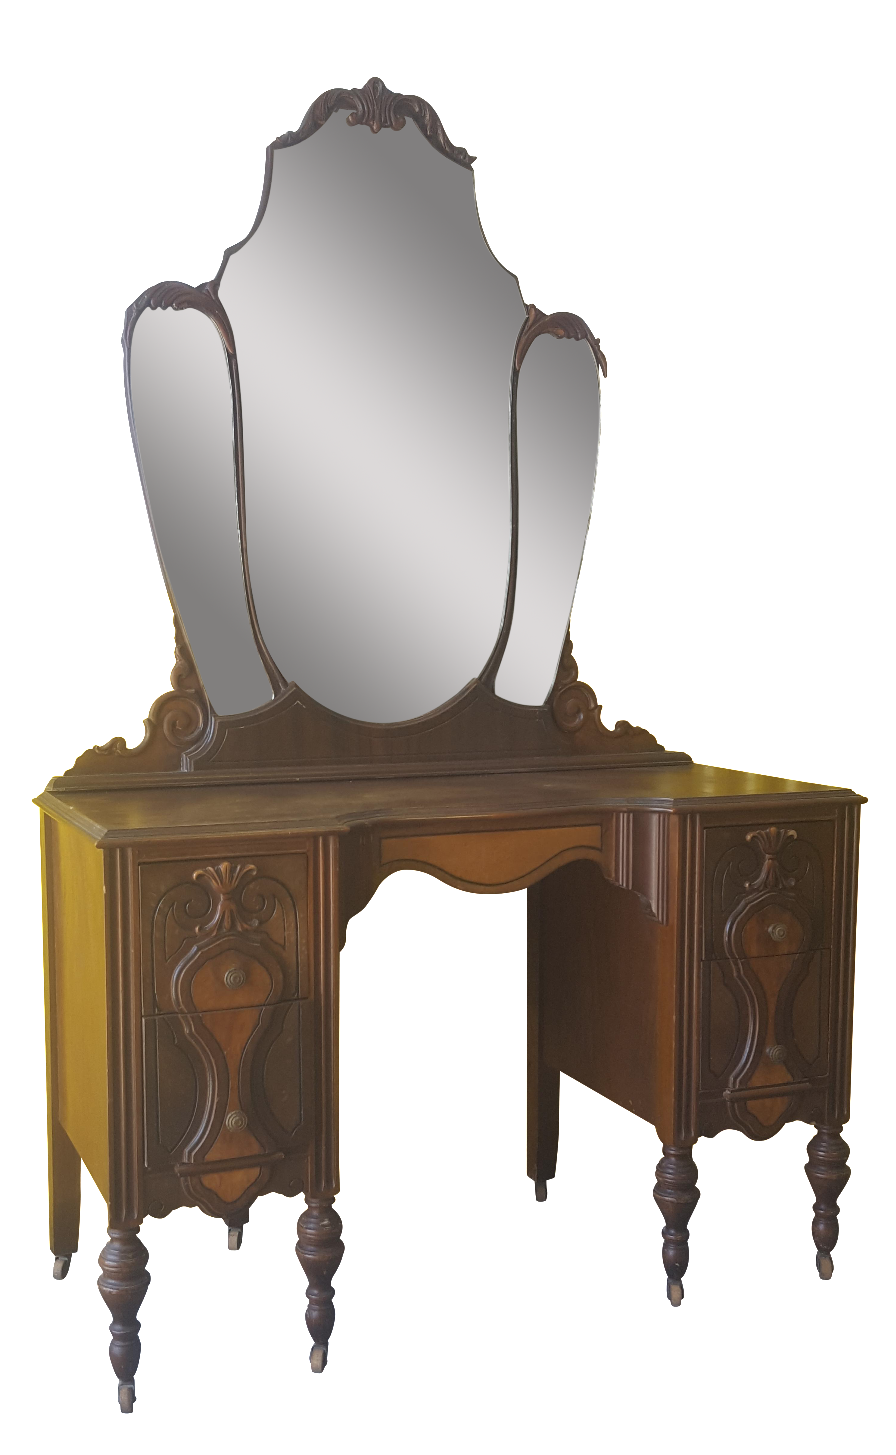 Dresser with mirror and chair - Image Of Antique Art Deco Vanity Dresser W Mirror Chair